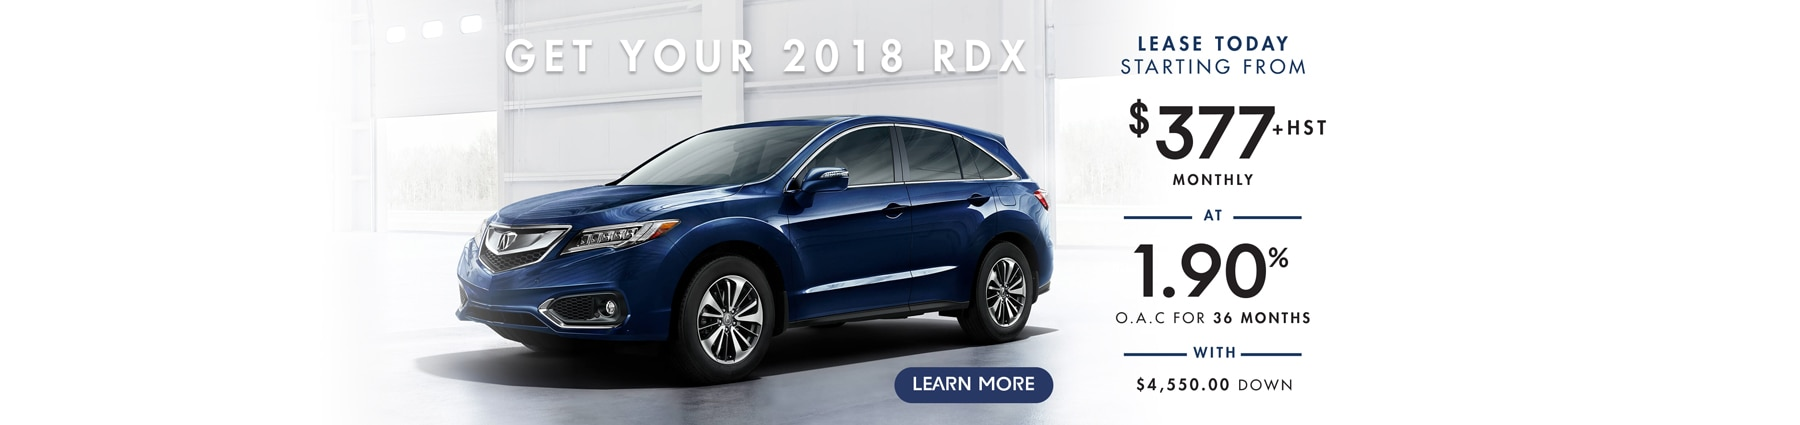 Erin Mills Acura >> Erin Mills Acura | Acura Service & Sales Dealership proudly serving Mississauga and the GTA